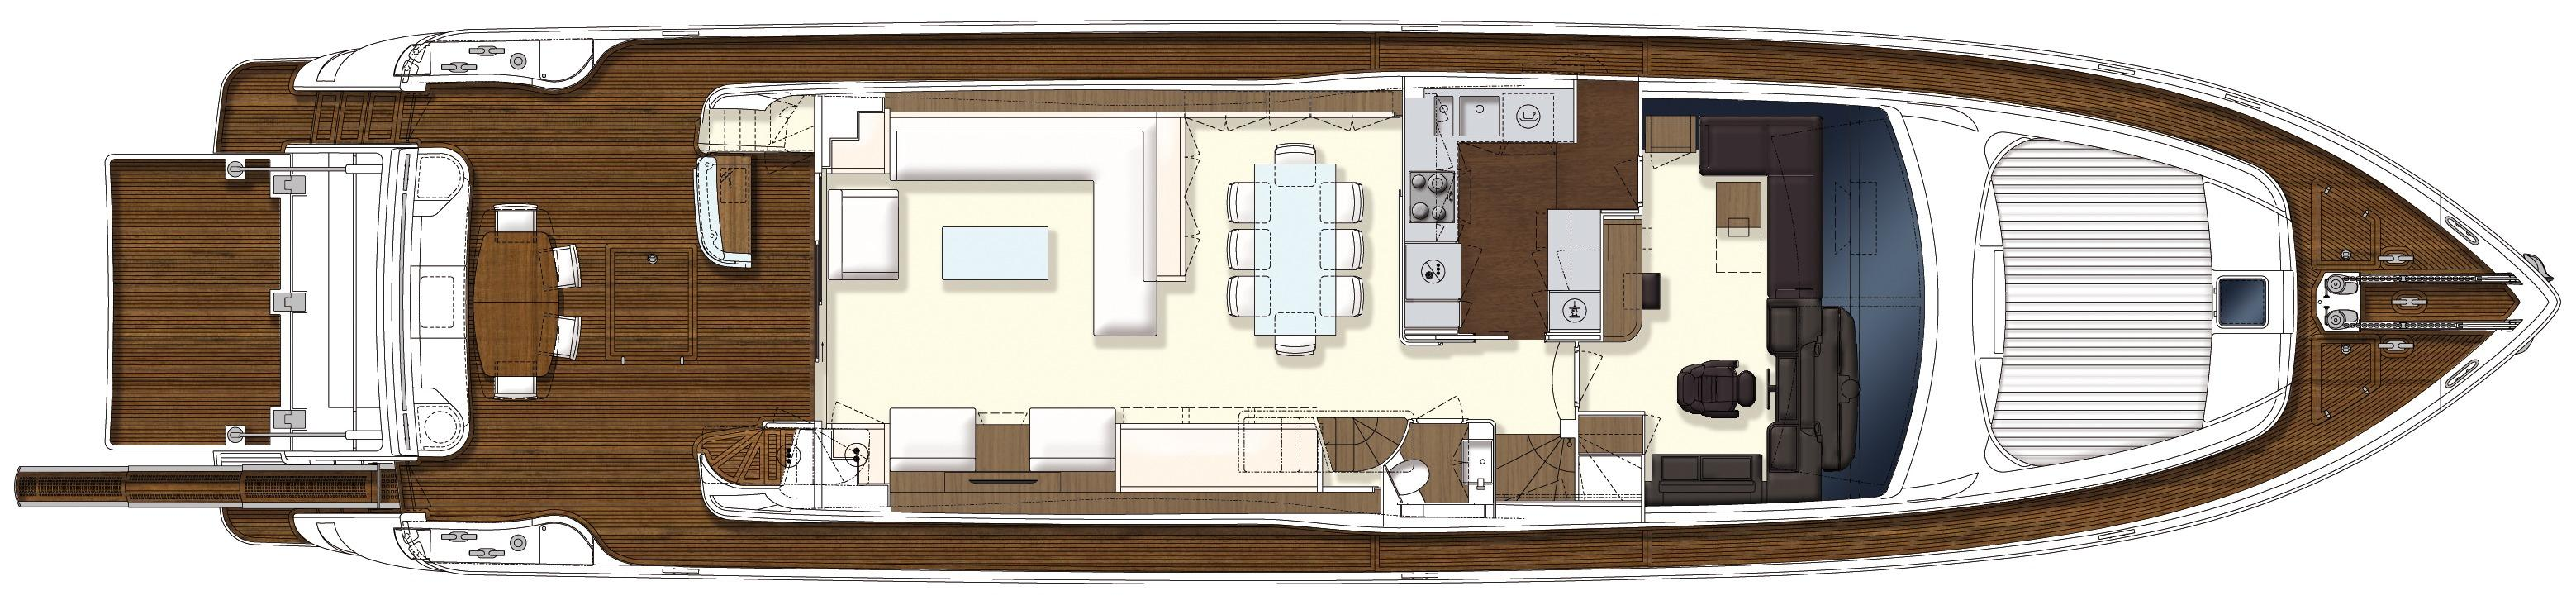 Manufacturer Provided Image: Ferretti 870 Upper Deck Layout Plan